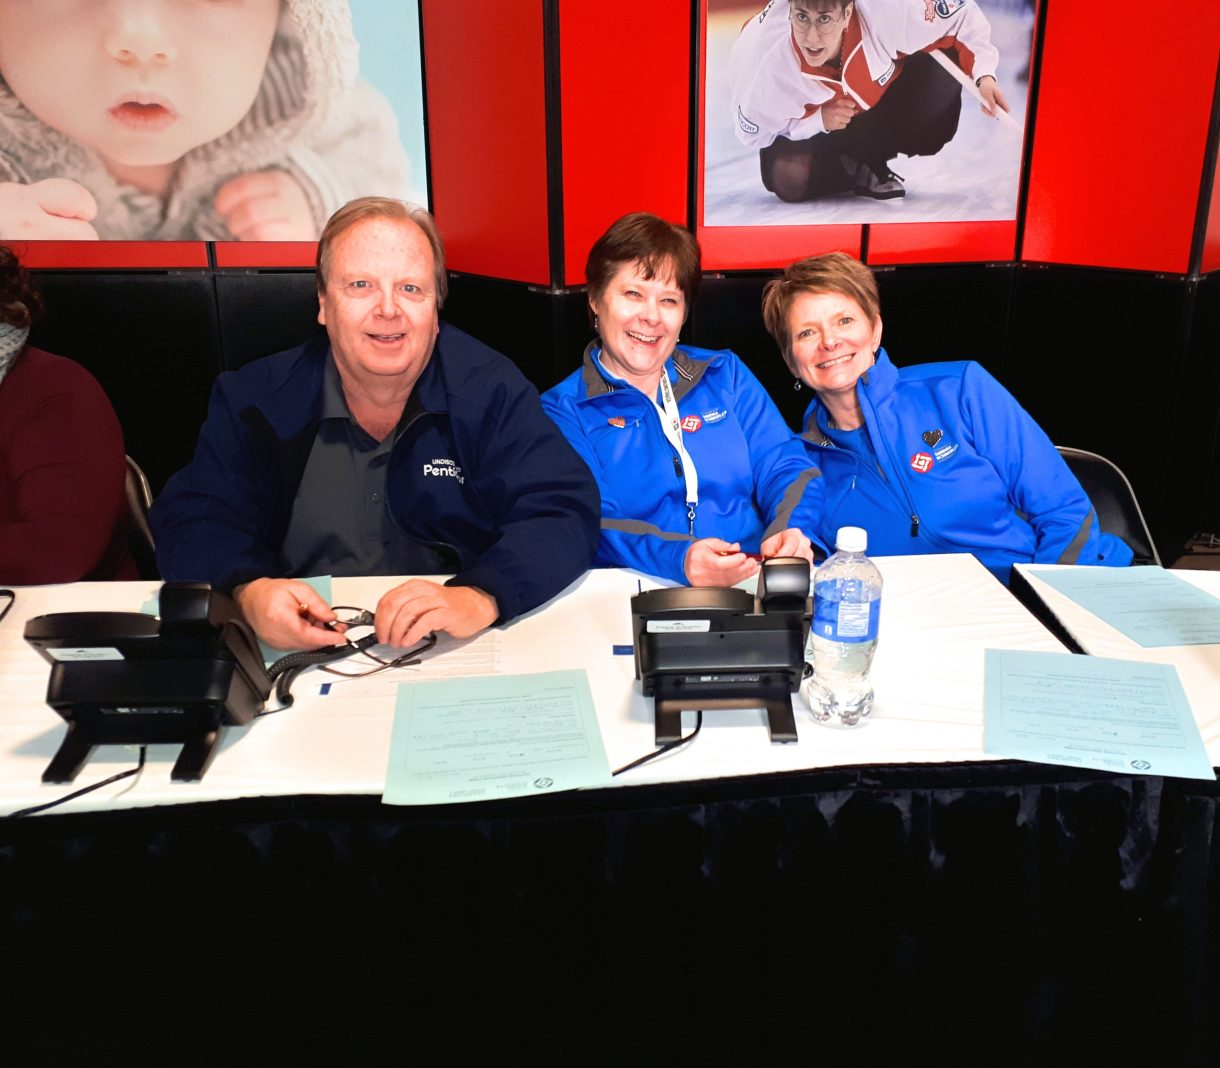 Minuteman Press franchise Co-Owner Andre Martin (left) at the 2018 Scotties Tournament of Hearts Canada Curling Championships. http://www.minutemanpressfranchise.ca